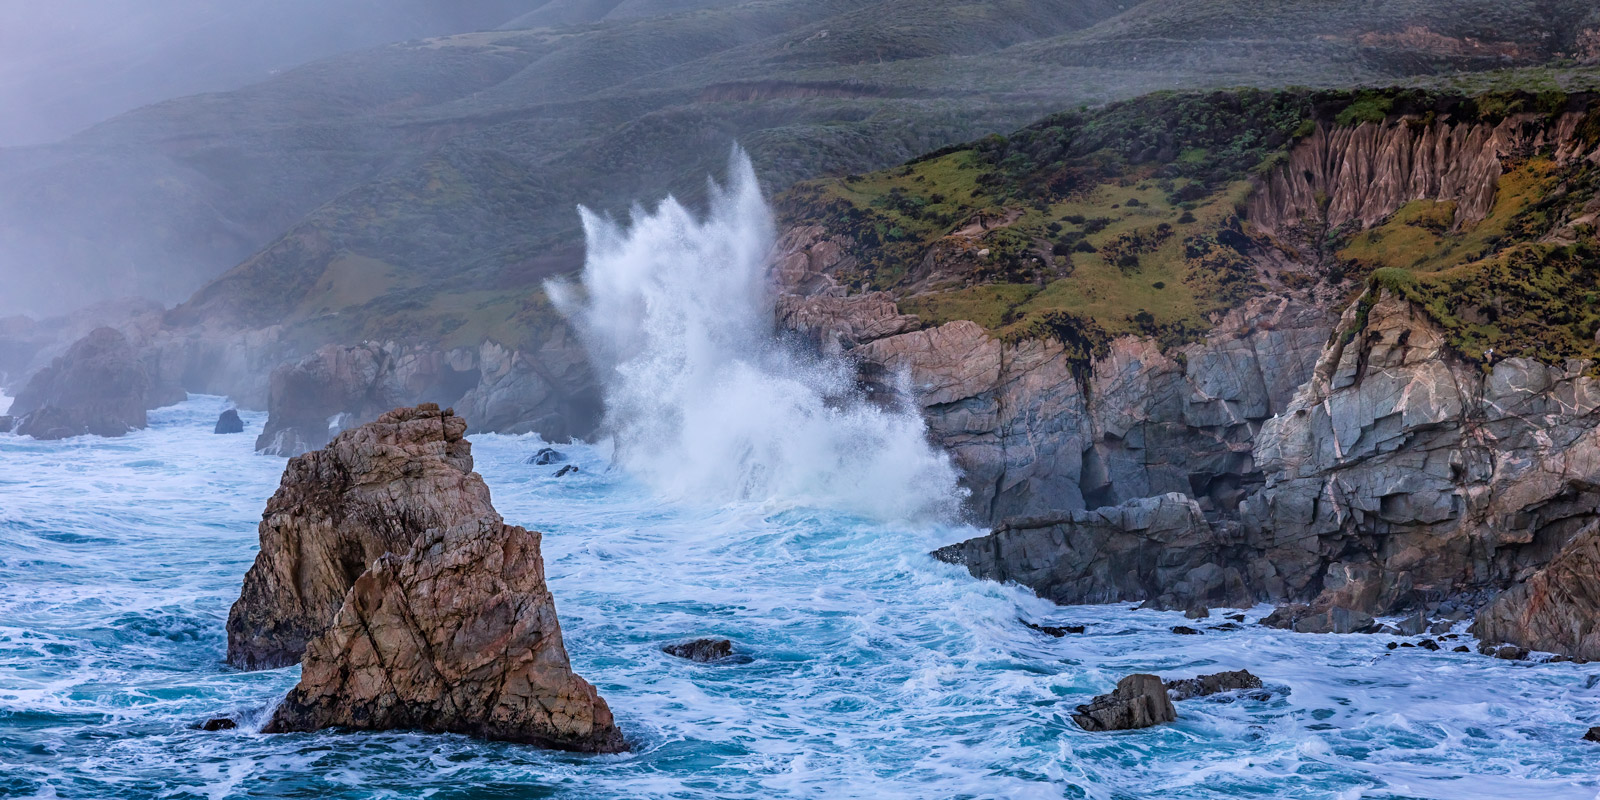 California, Garrapata, Storm, Wave, rocky coast, limited edition, photograph, fine art, landscape, coast, photo